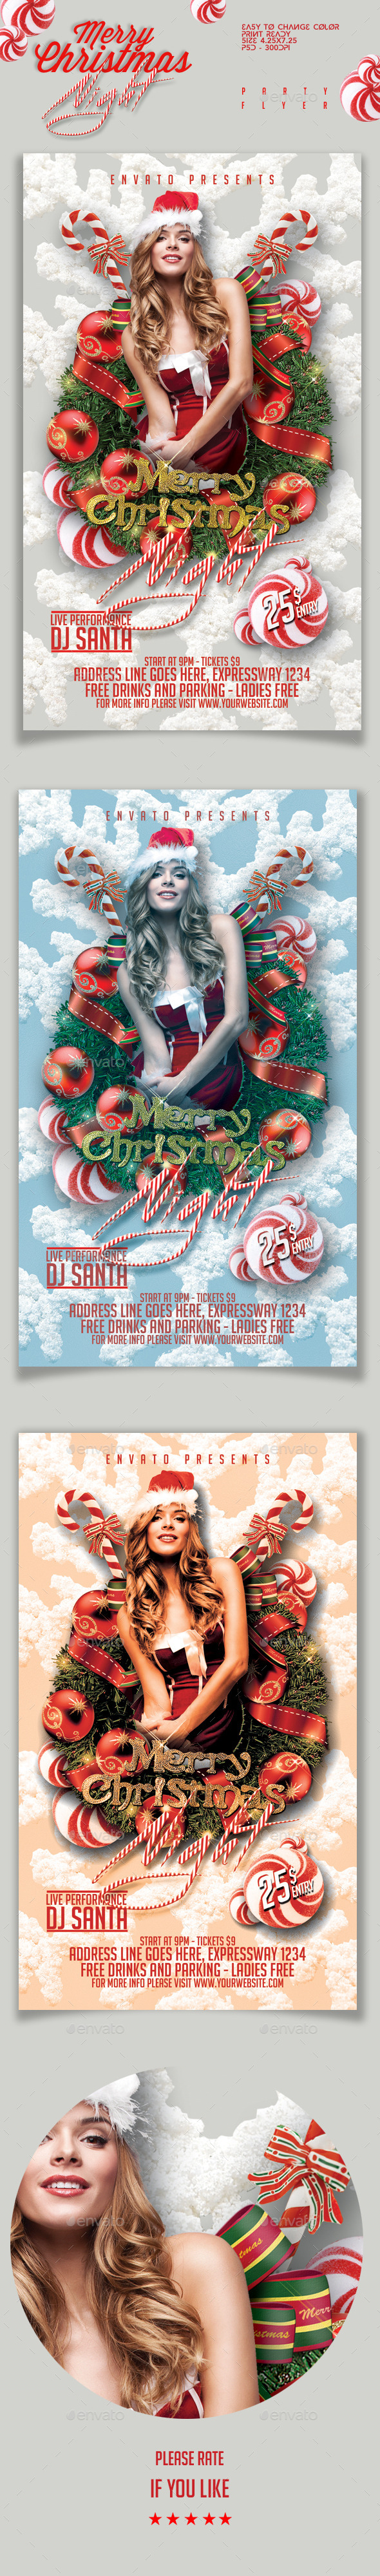 Merry Christmas Night Party Flyer - Holidays Events